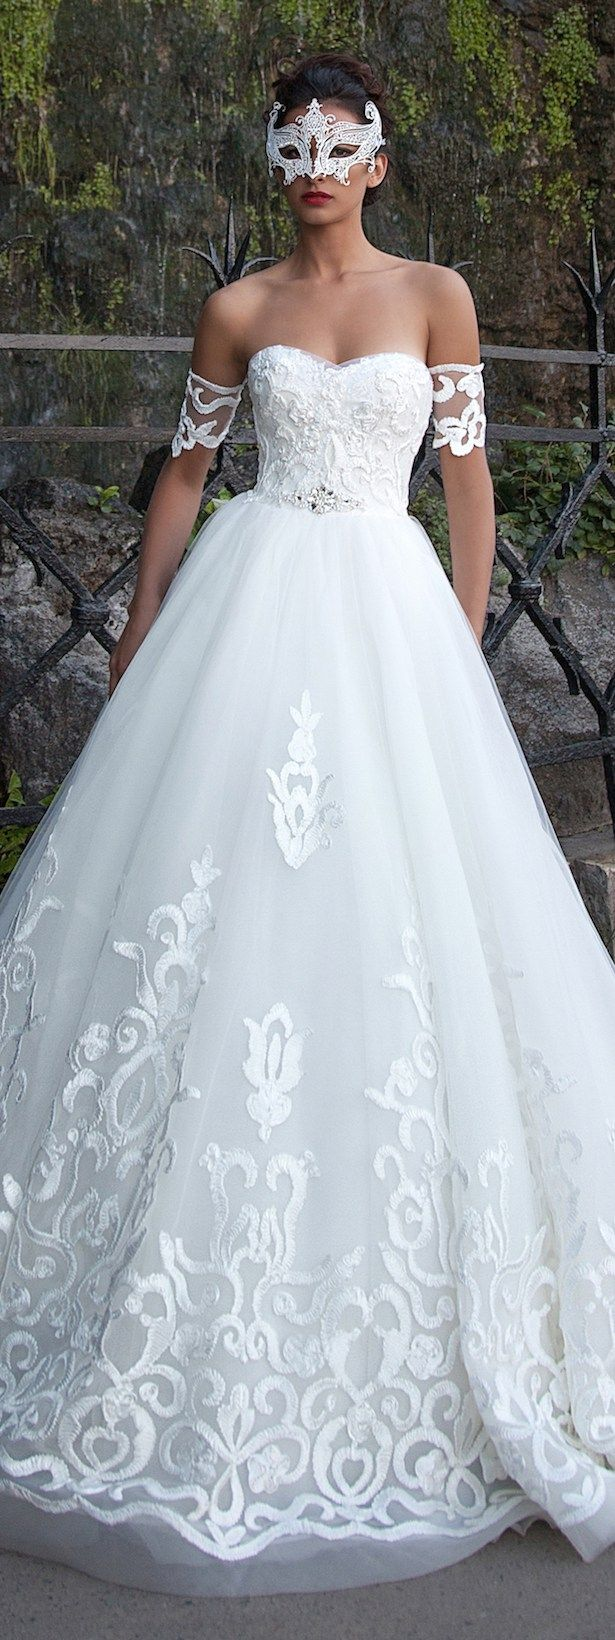 Contemporary Vestido Novia Gitana Images - All Wedding Dresses ...